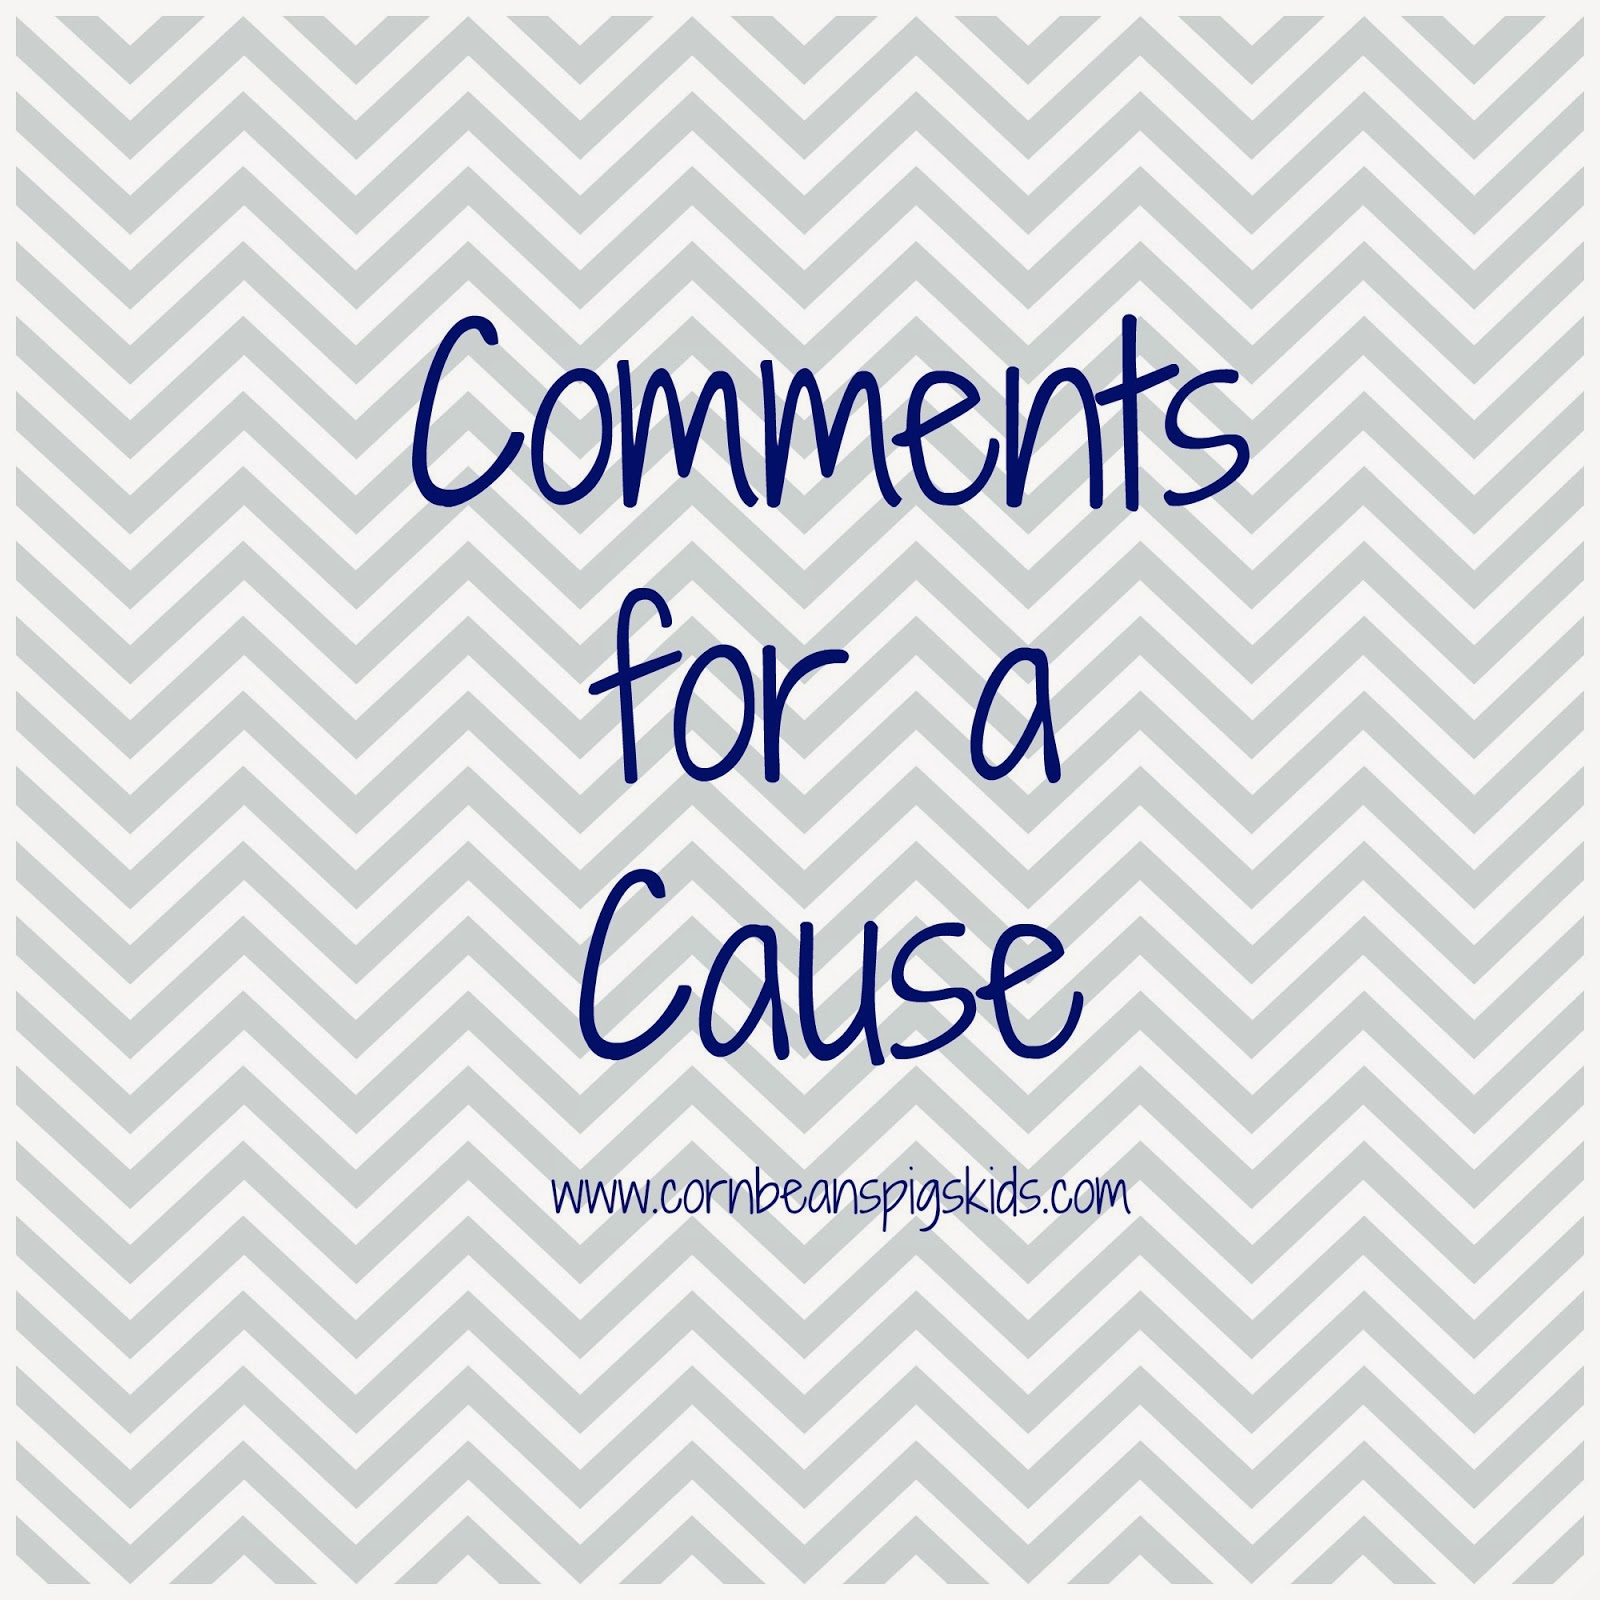 Comments for a Cause